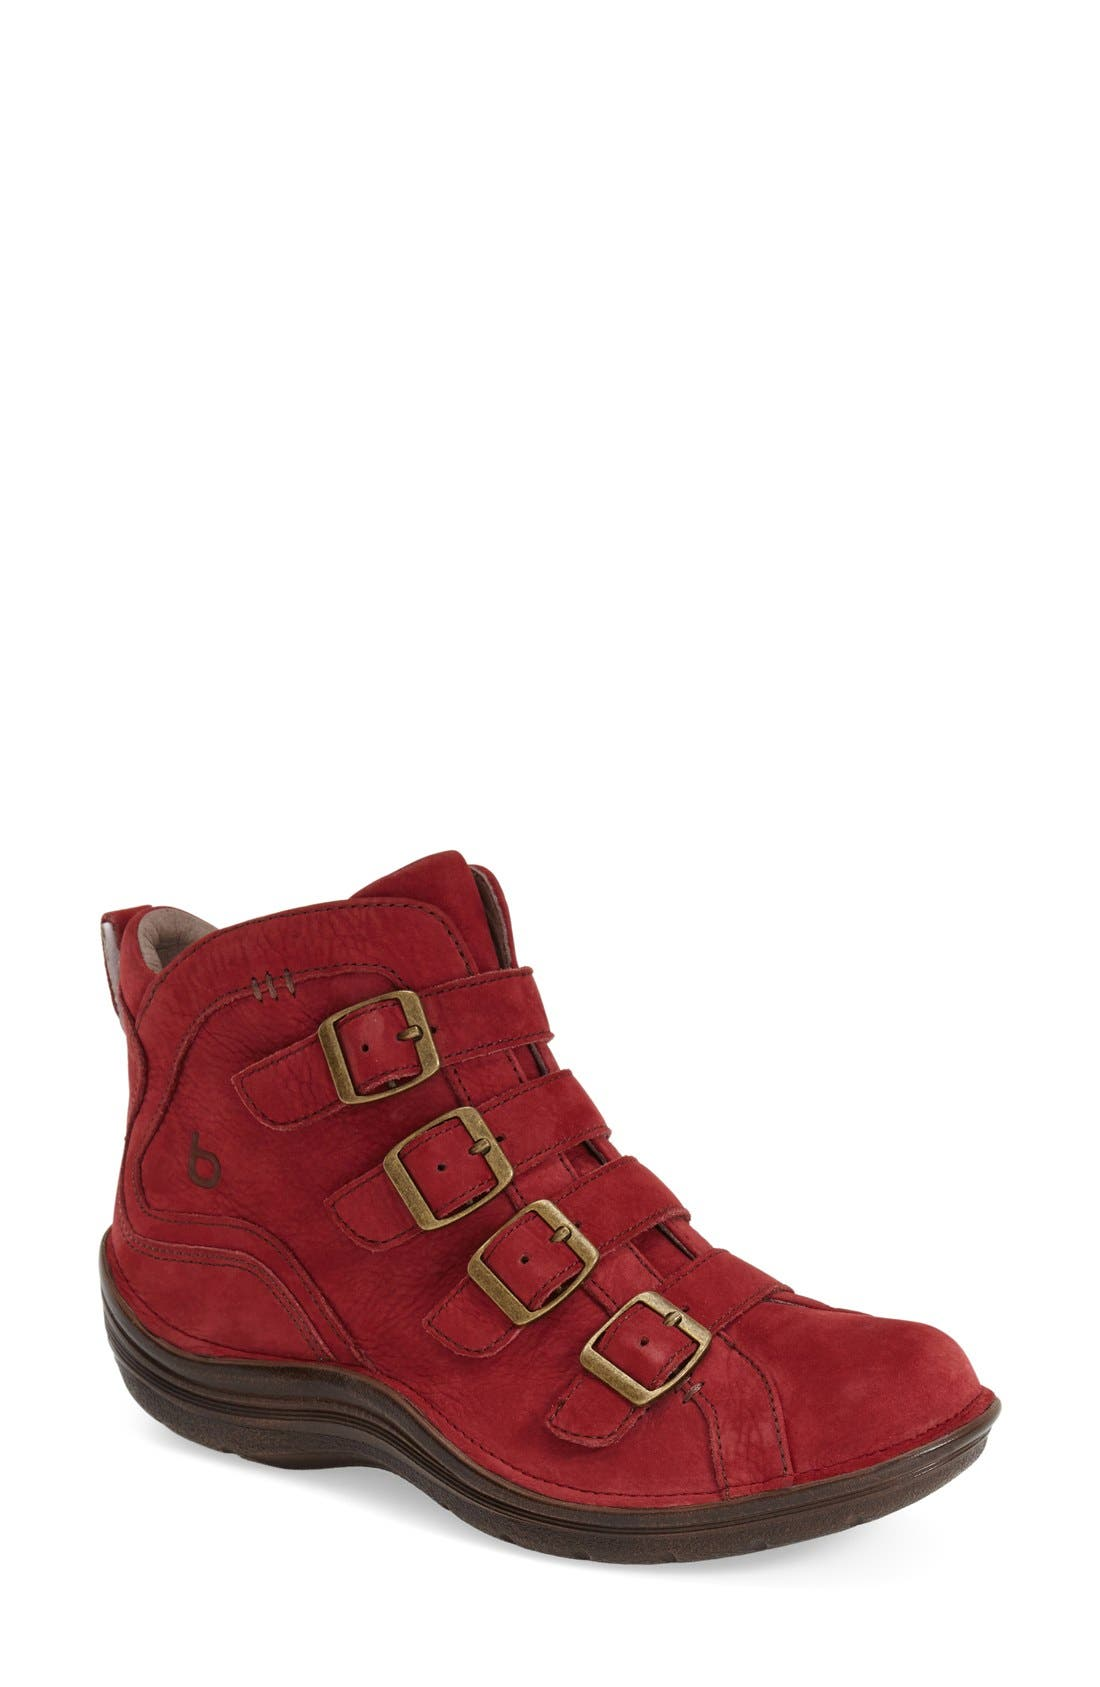 'Orion' Bootie,                         Main,                         color, Red Leather